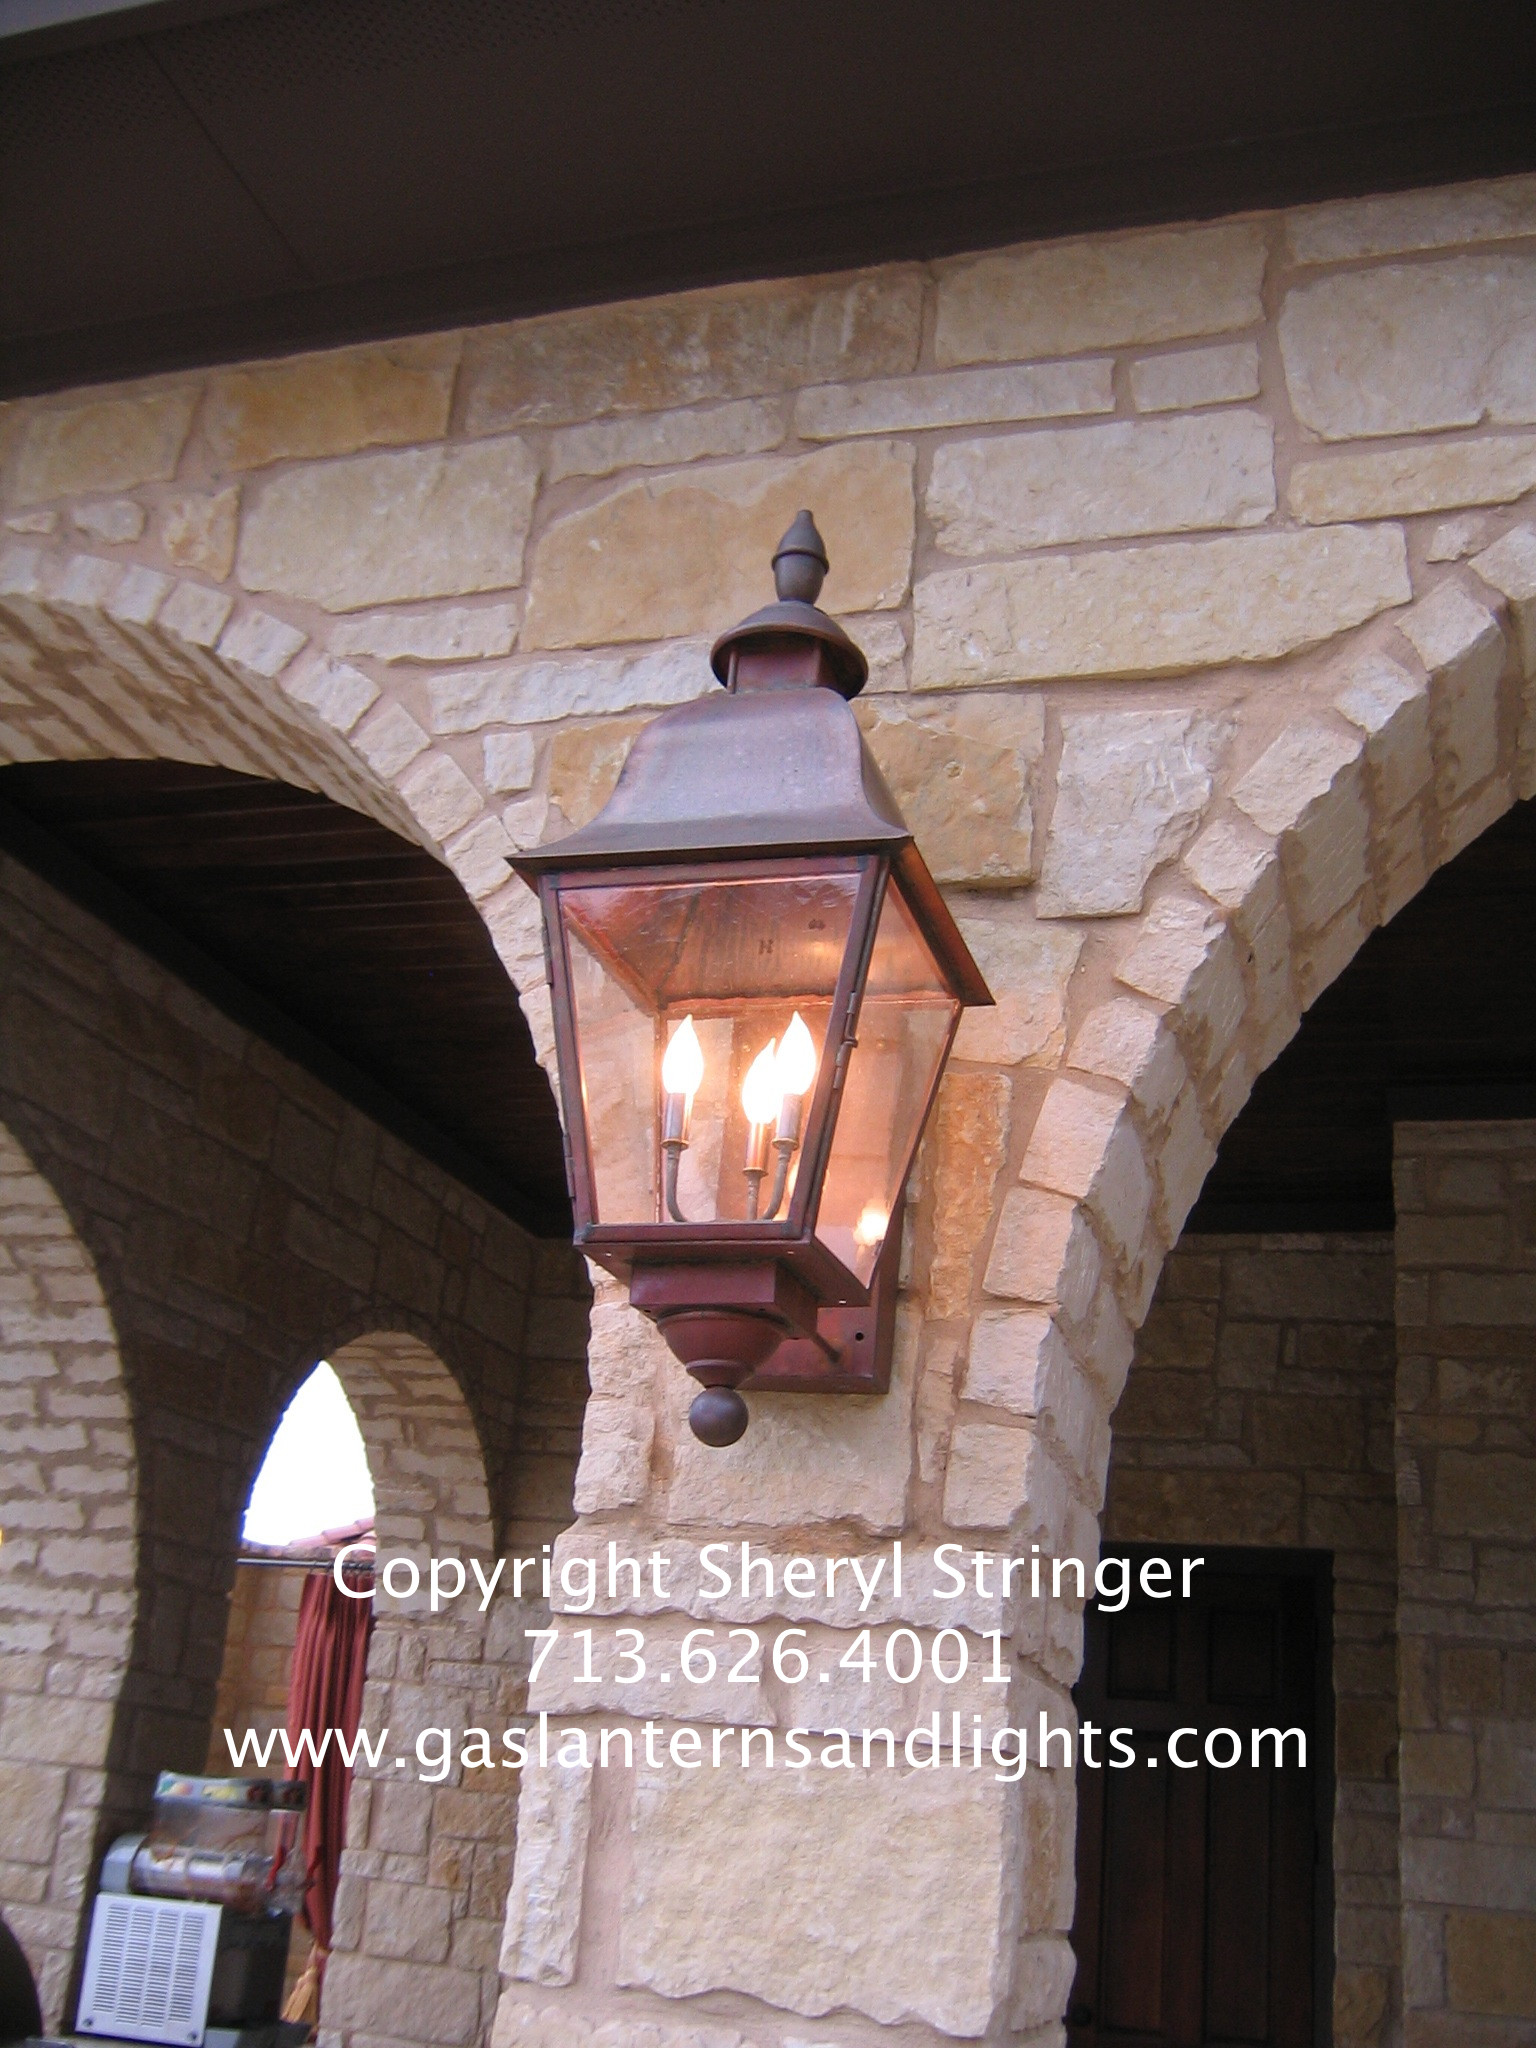 Sheryl's Electric Tuscan Lantern with Natural Copper Finish